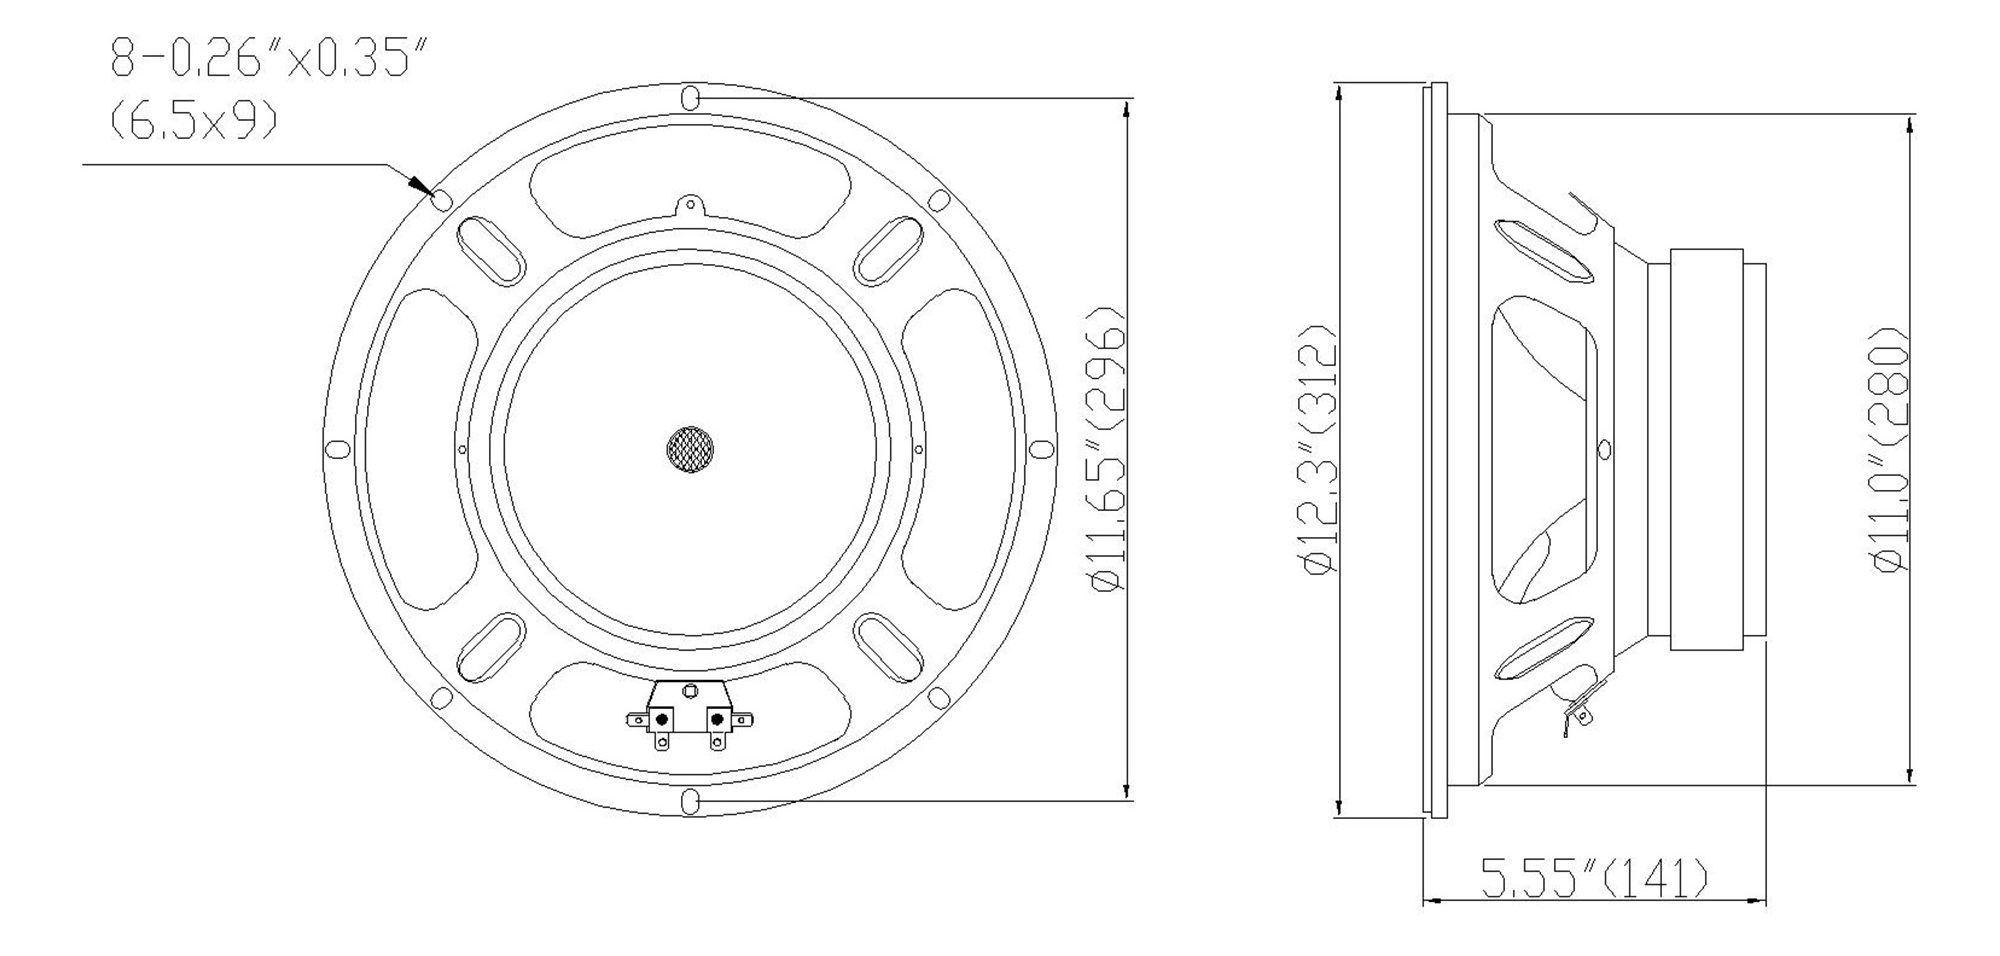 """Sound Town STLF-12VS 12"""" 250W Steel Frame Raw Woofer Replacement (Low Frequency Driver) w/ 2"""" Voice Coil, for PA/DJ Speaker, Subwoofer Cabinets - Mounting Information, Size and Dimensions"""